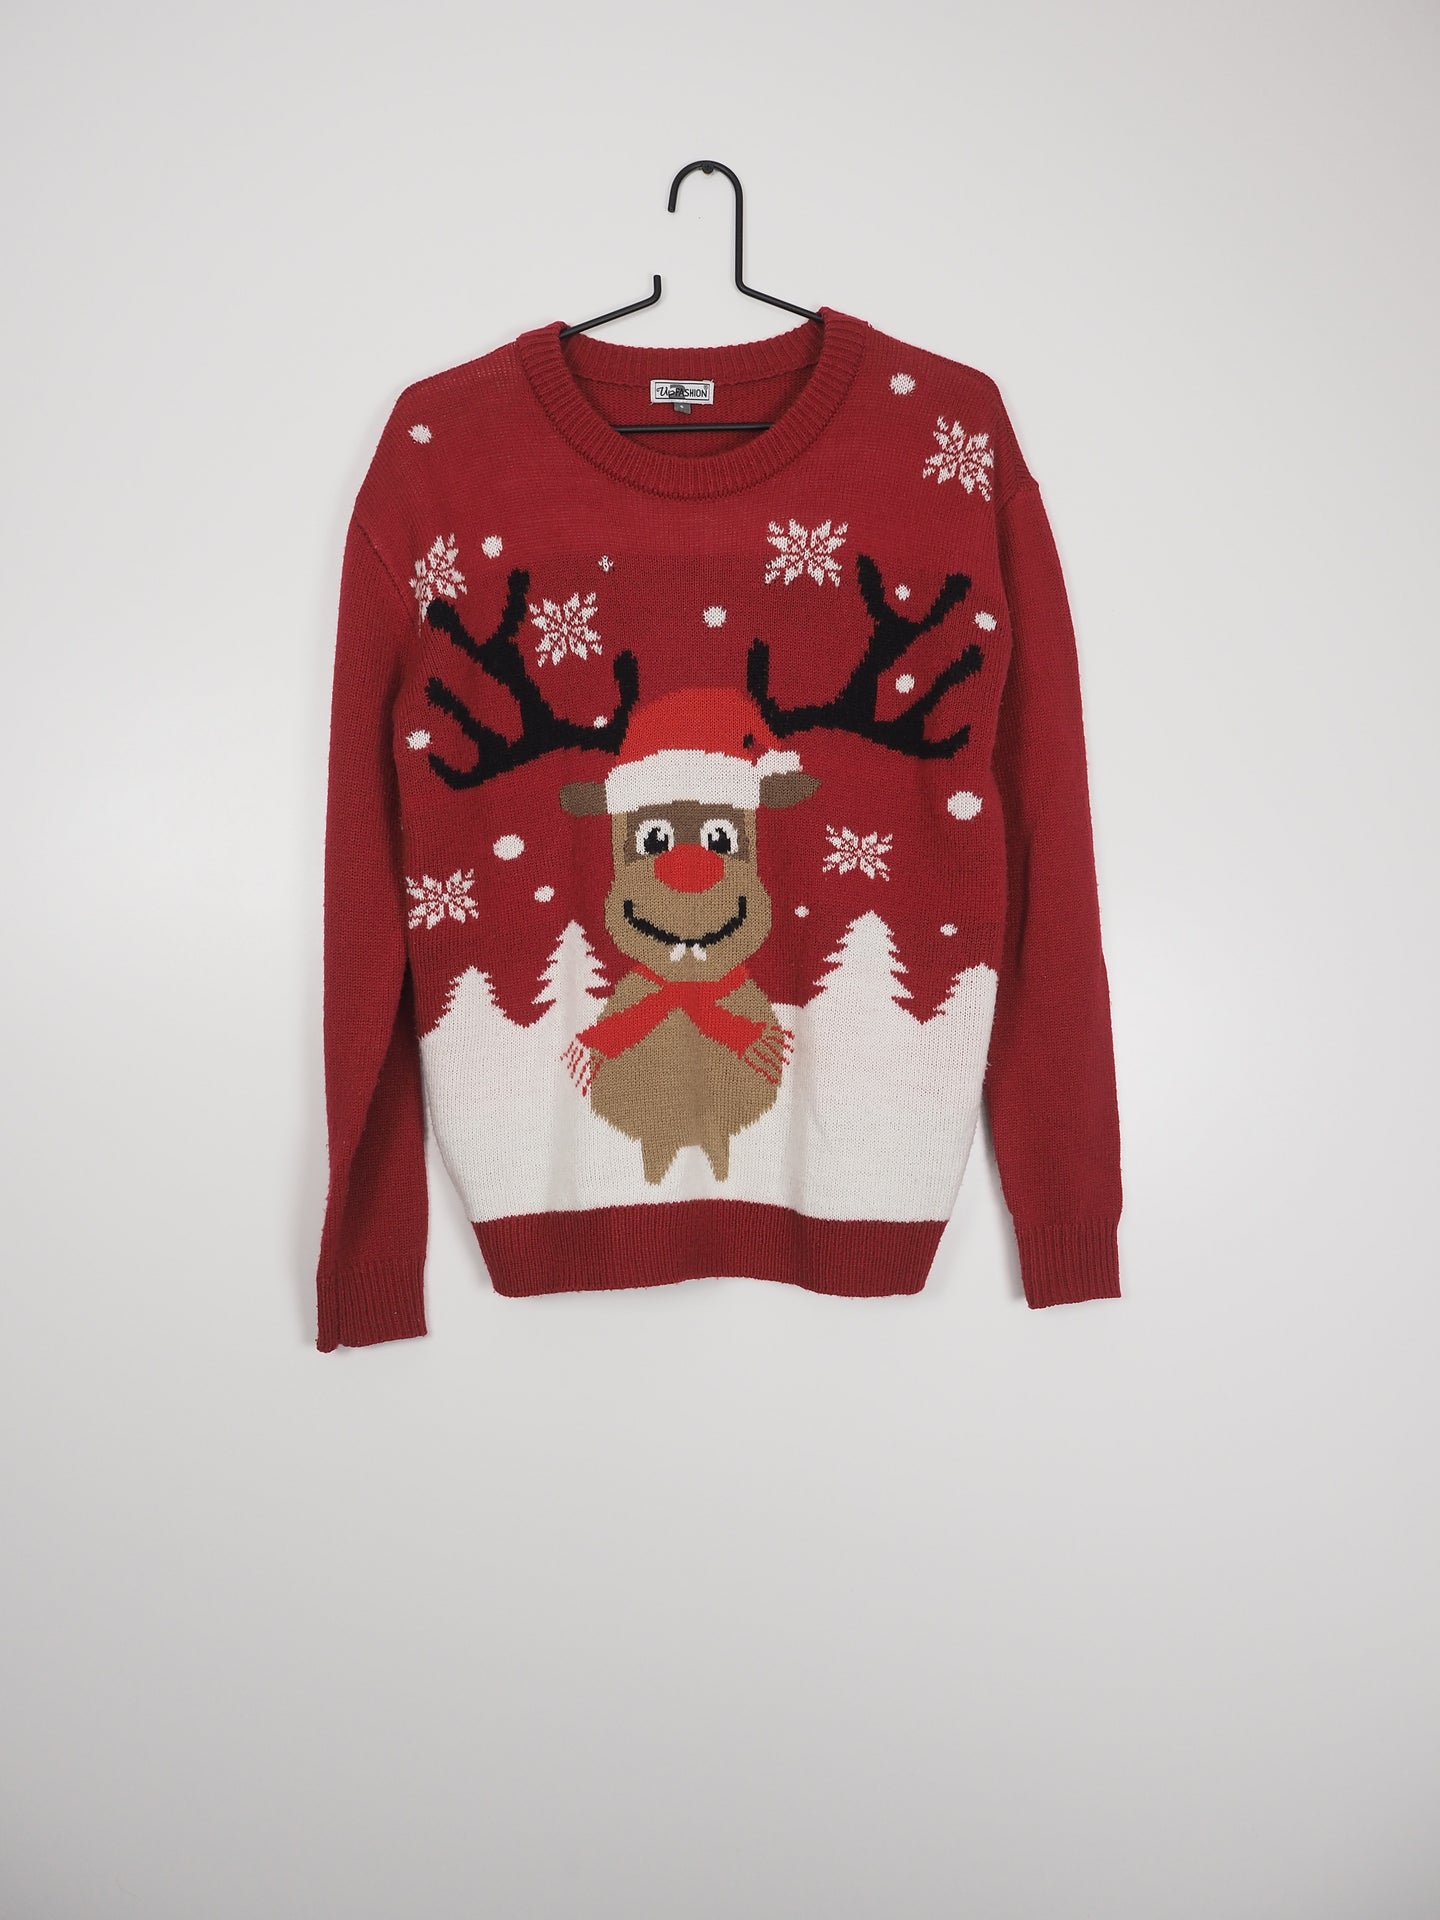 Kersttrui (Up2Fashion)